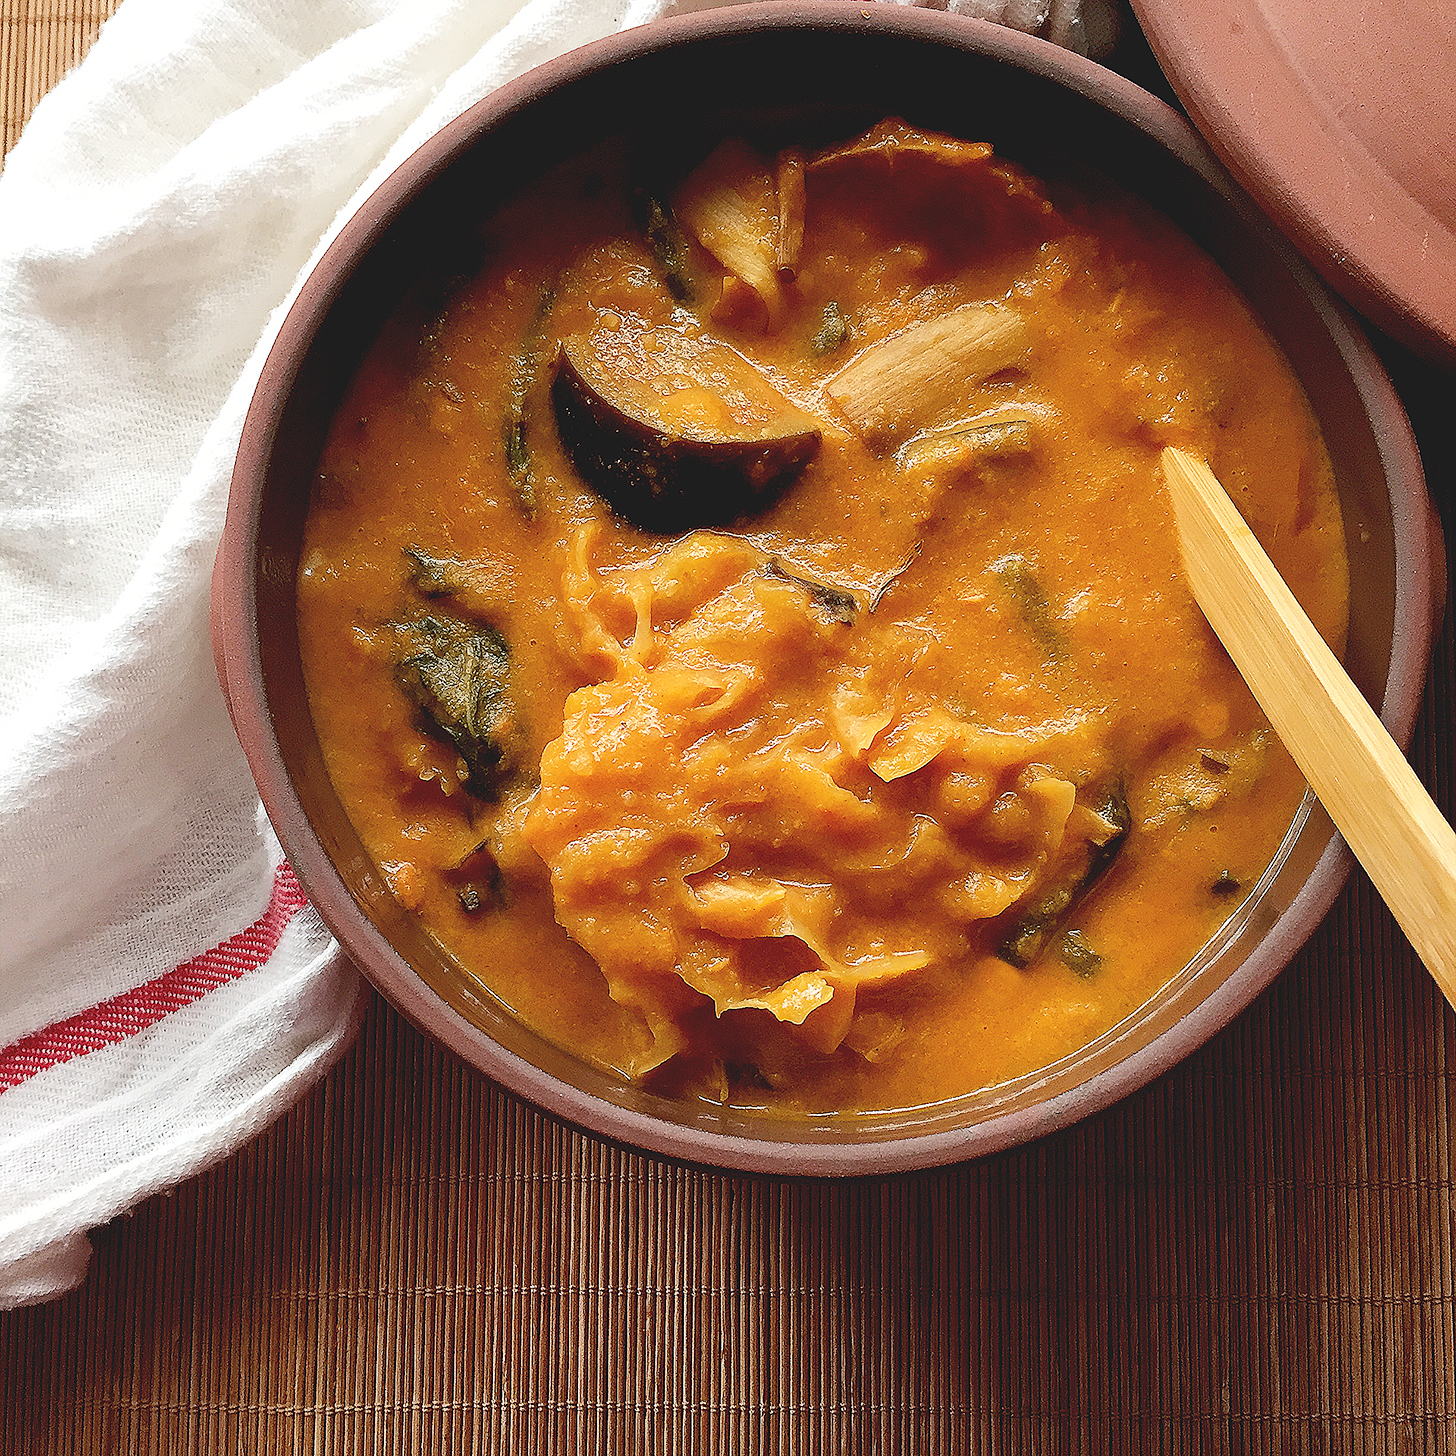 Vegan Kare Kare Filipino Vegetable Stew In Peanut Based Sauce